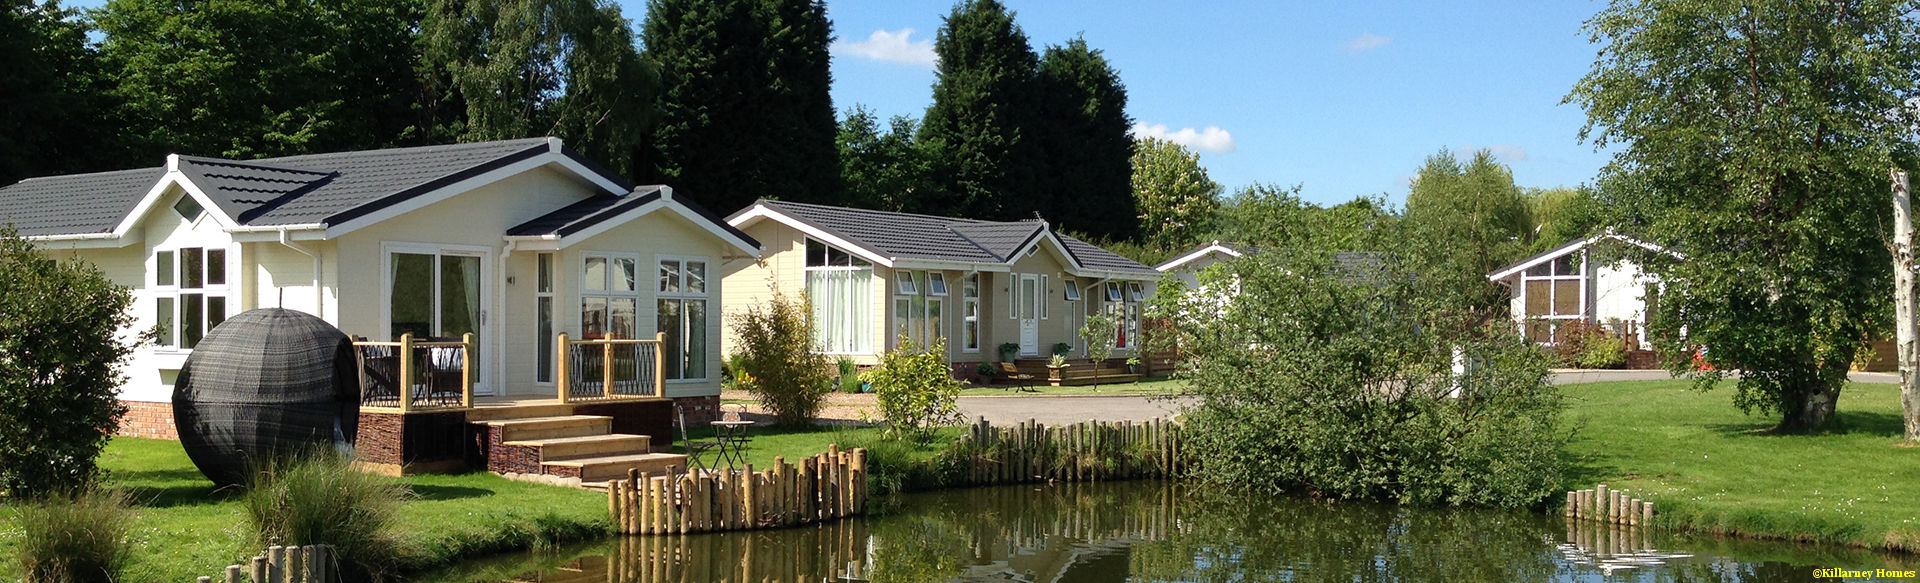 Residential Park Homes Luxury Holiday Lodge Manufacturer